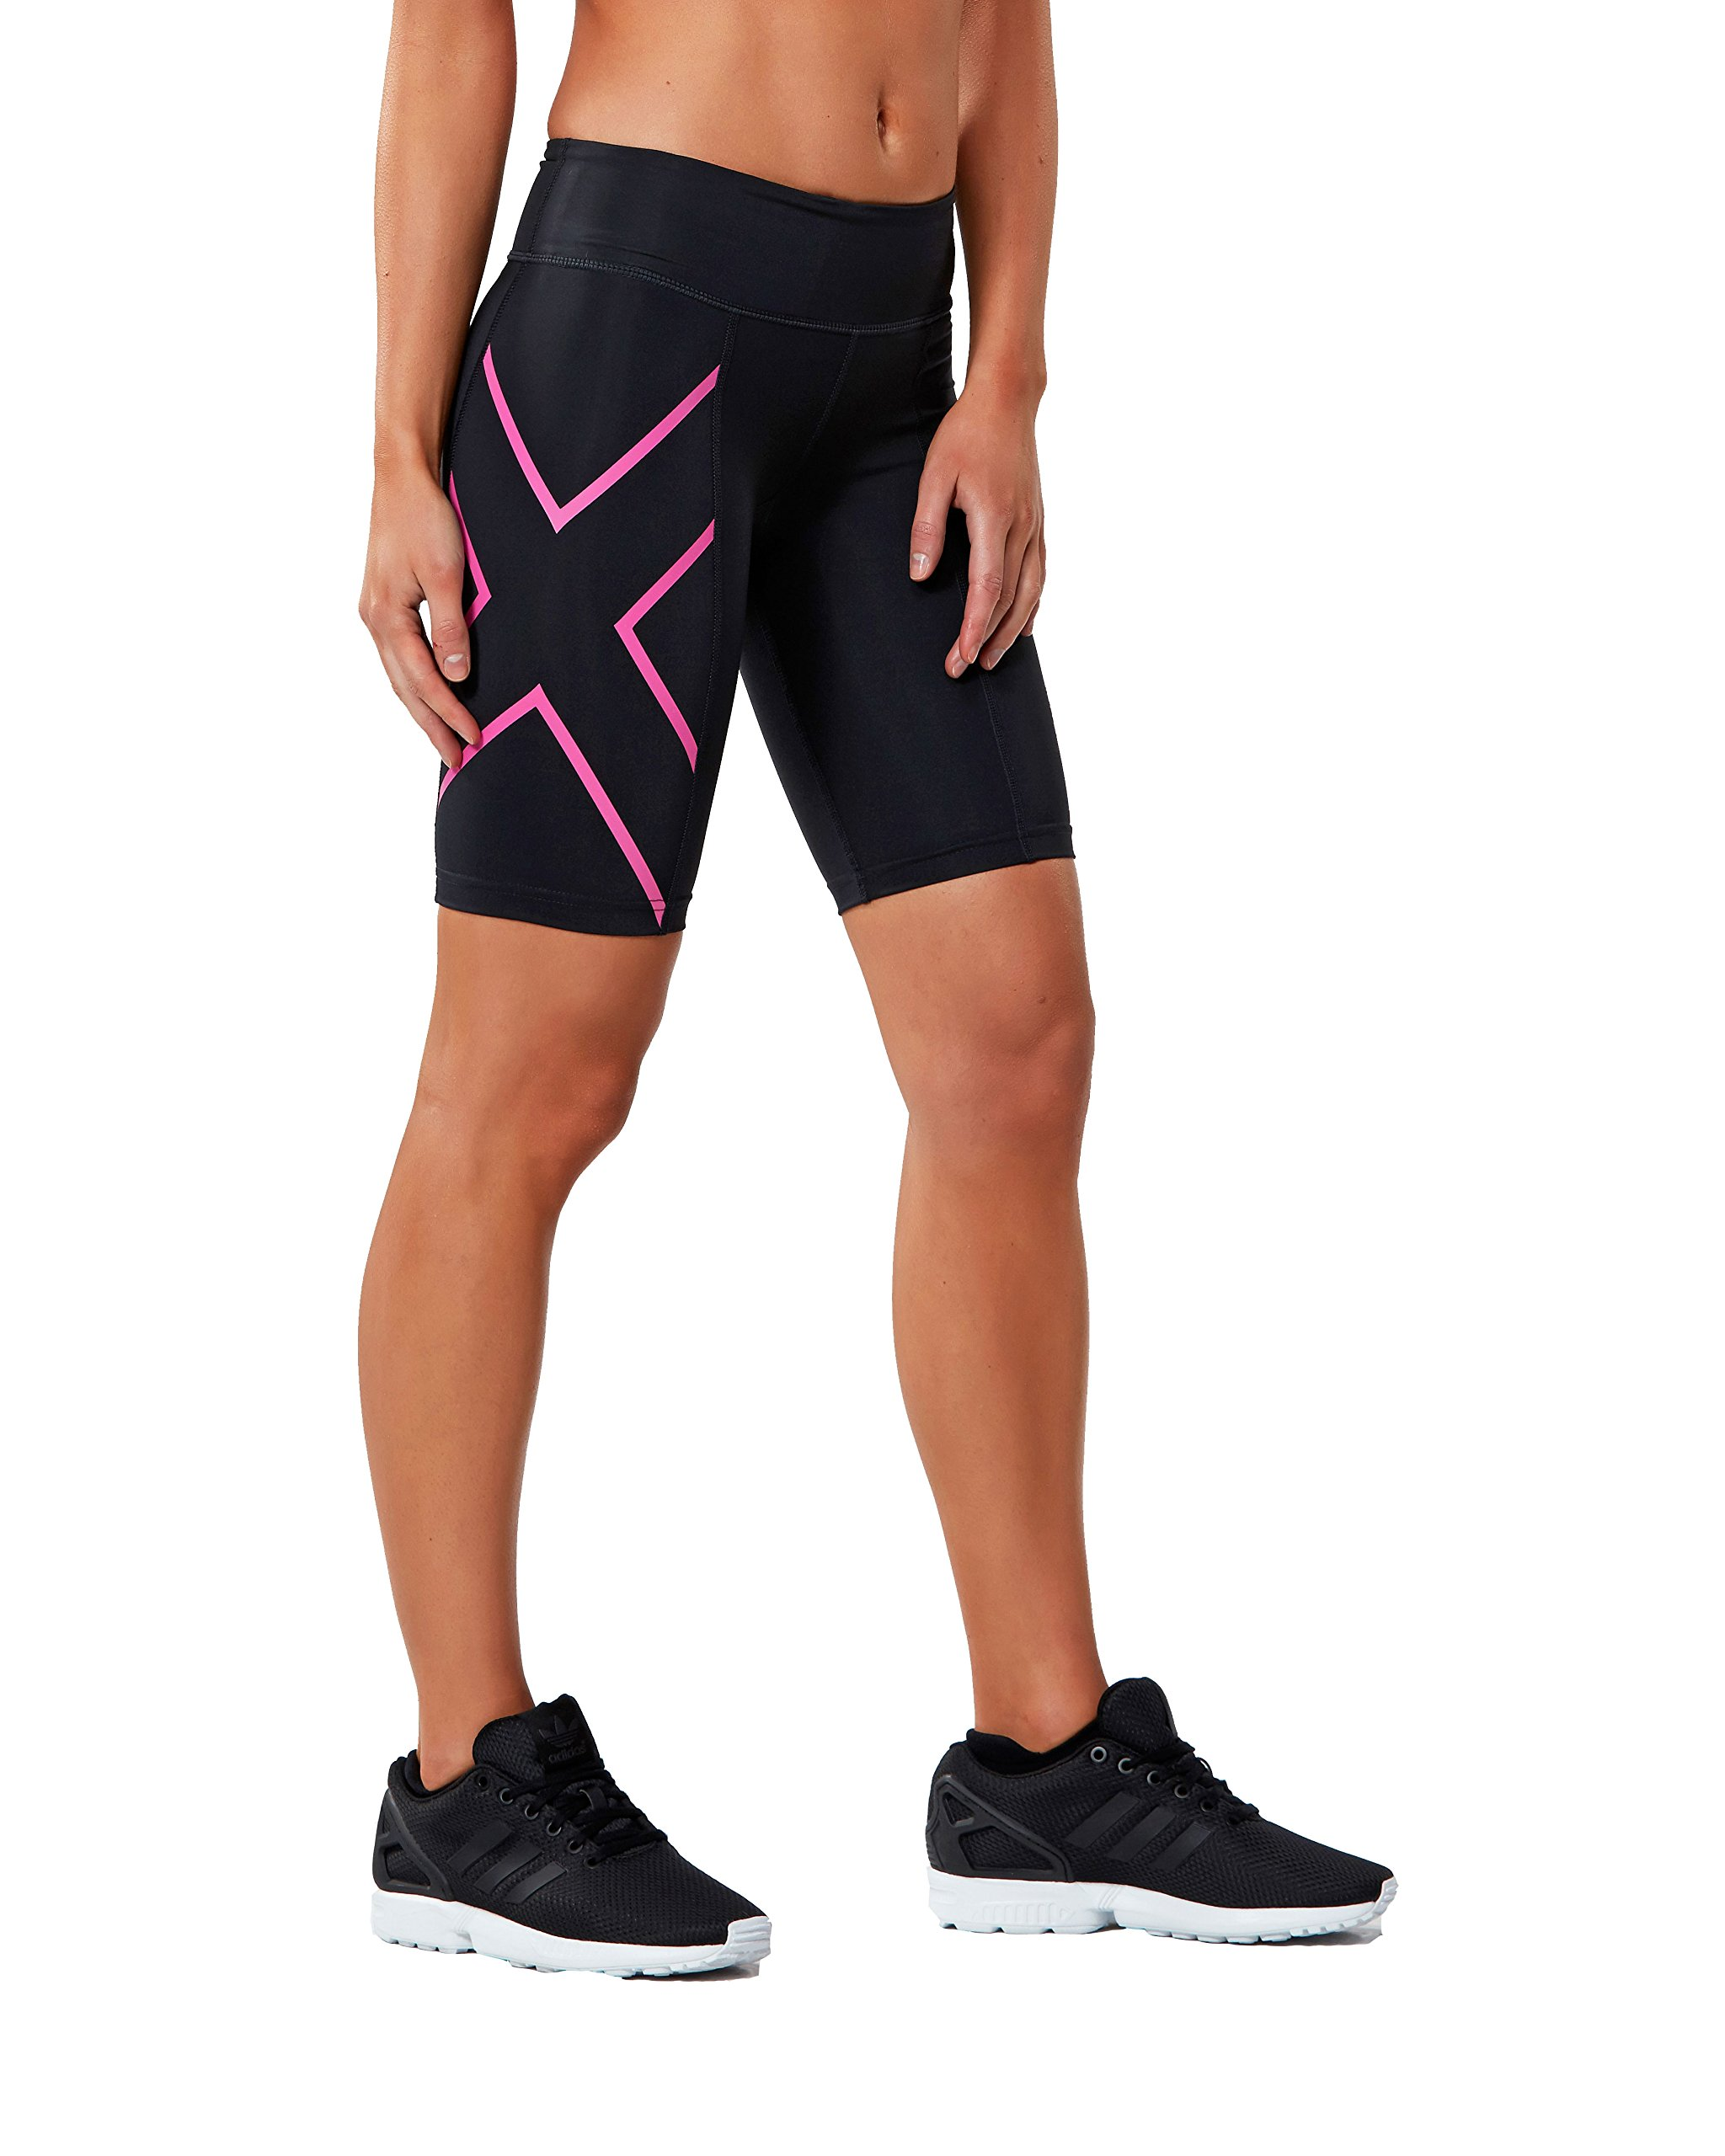 2xu Womens Mid-rise Athletic Compression Shorts, Black/cerise Pink, Small